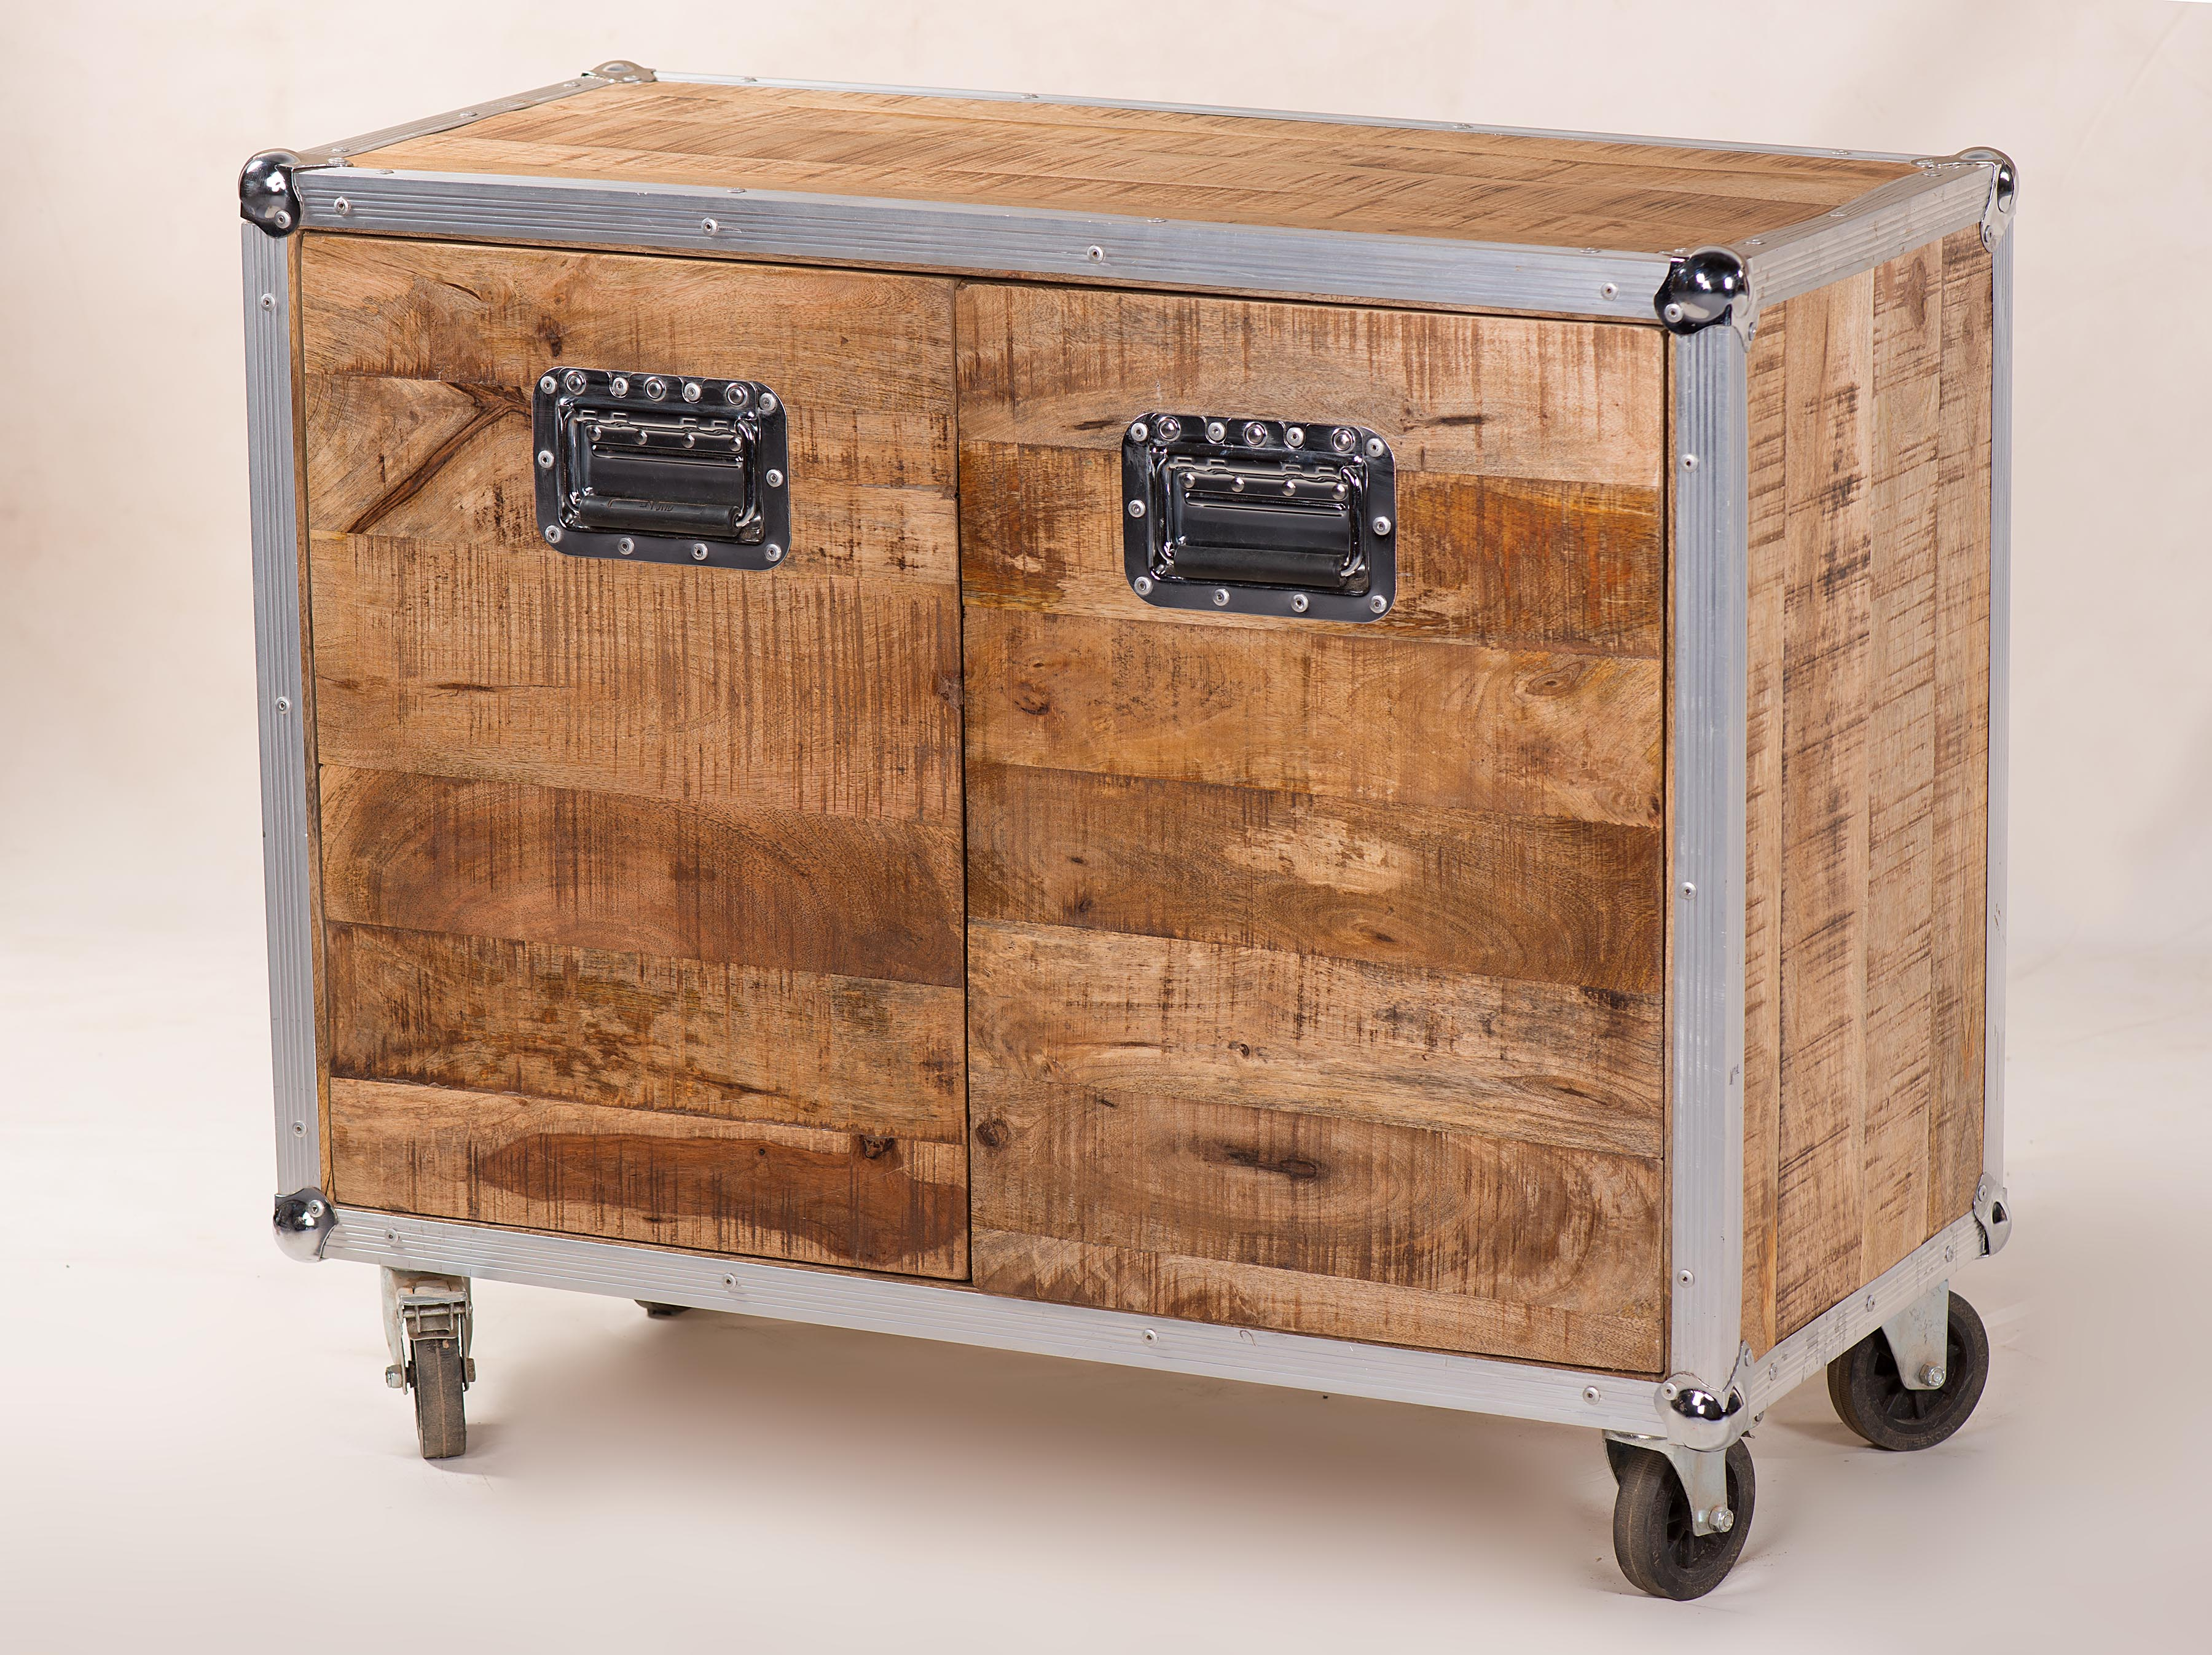 Recycling Couchtisch Couchtisch Truhe Im Industrial Chic Design Aus Recycling Holz